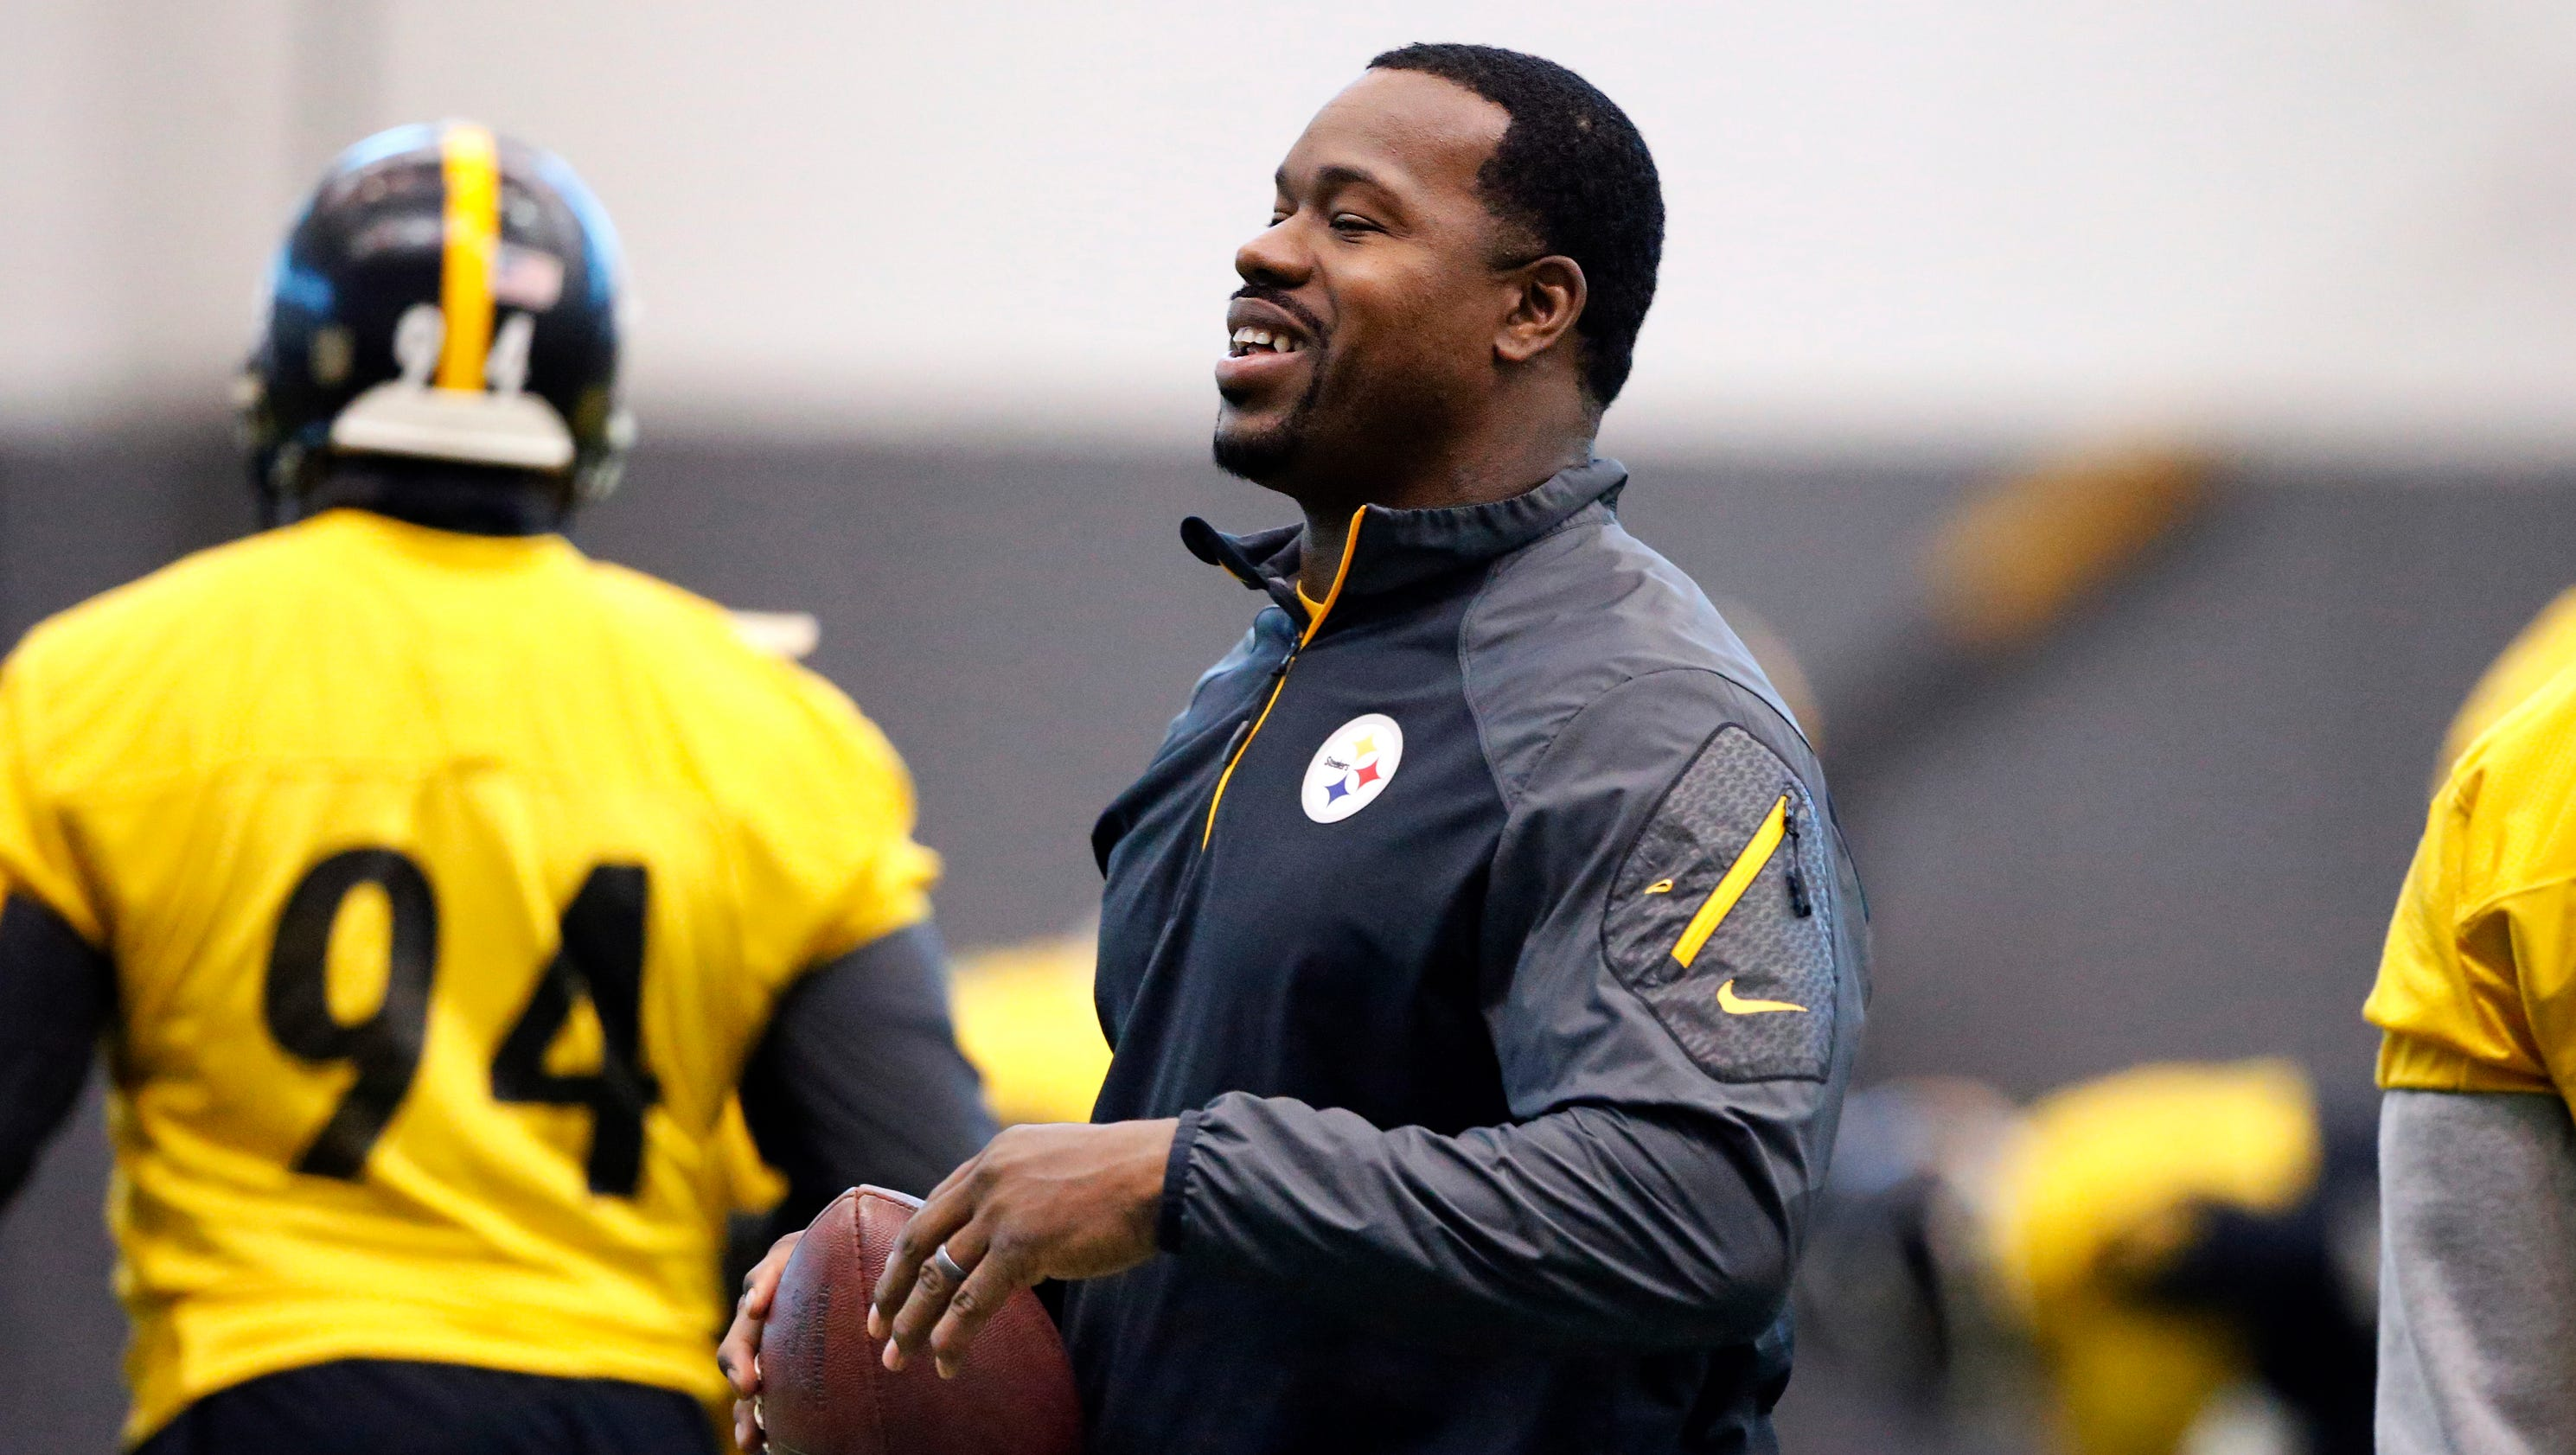 636198423265807089-ap-steelers-assistant-coach-charges-football-87842624